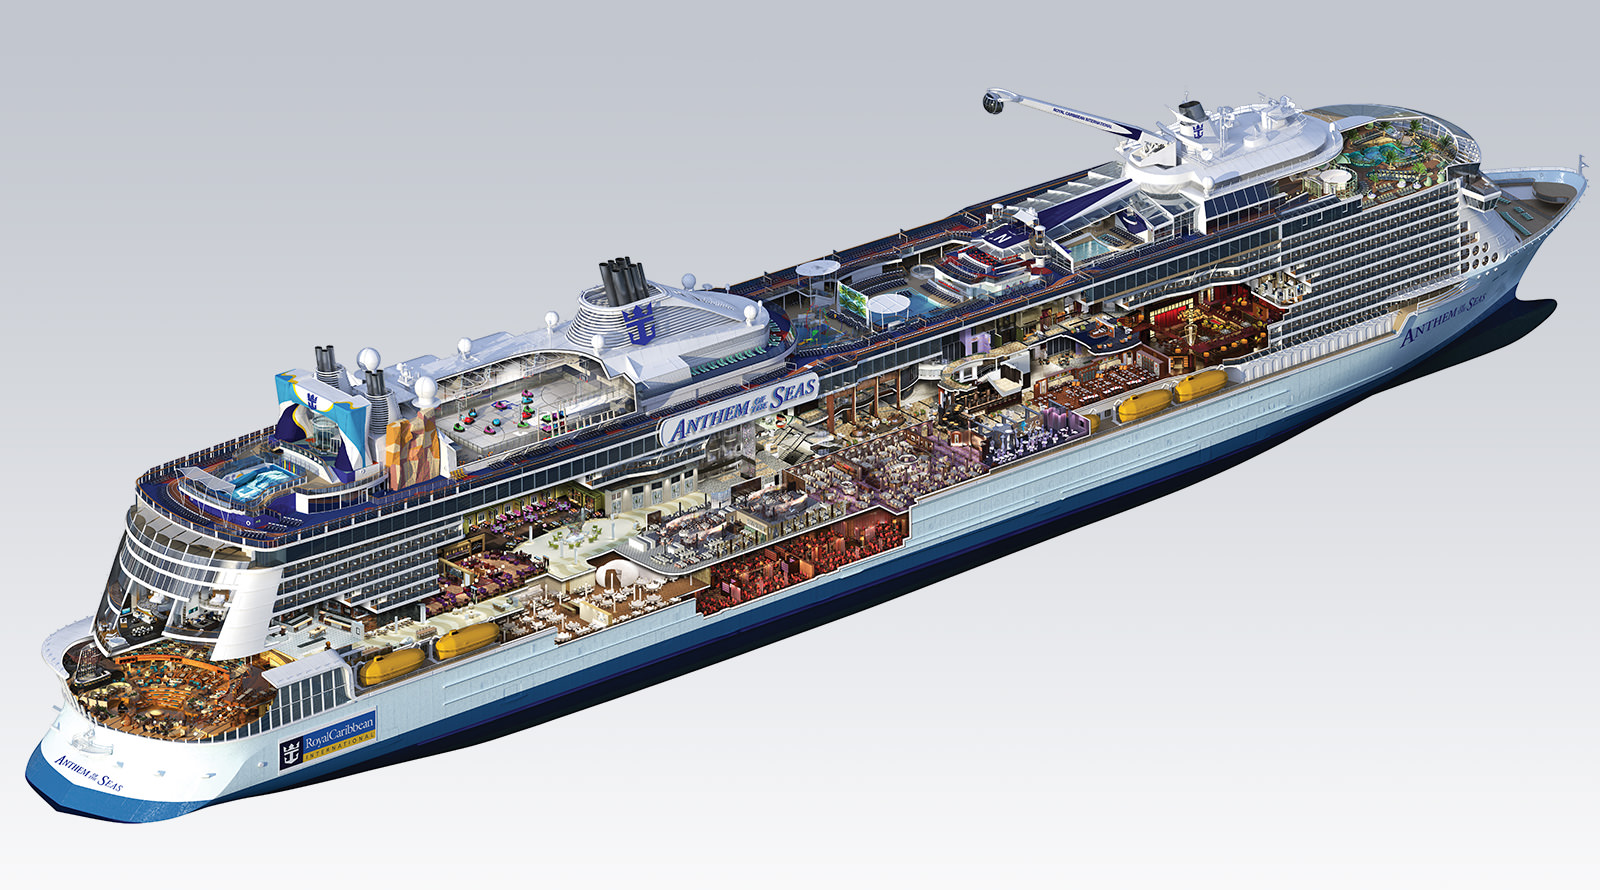 Anthem Of The Seas With Royal Caribbean International Maketh The